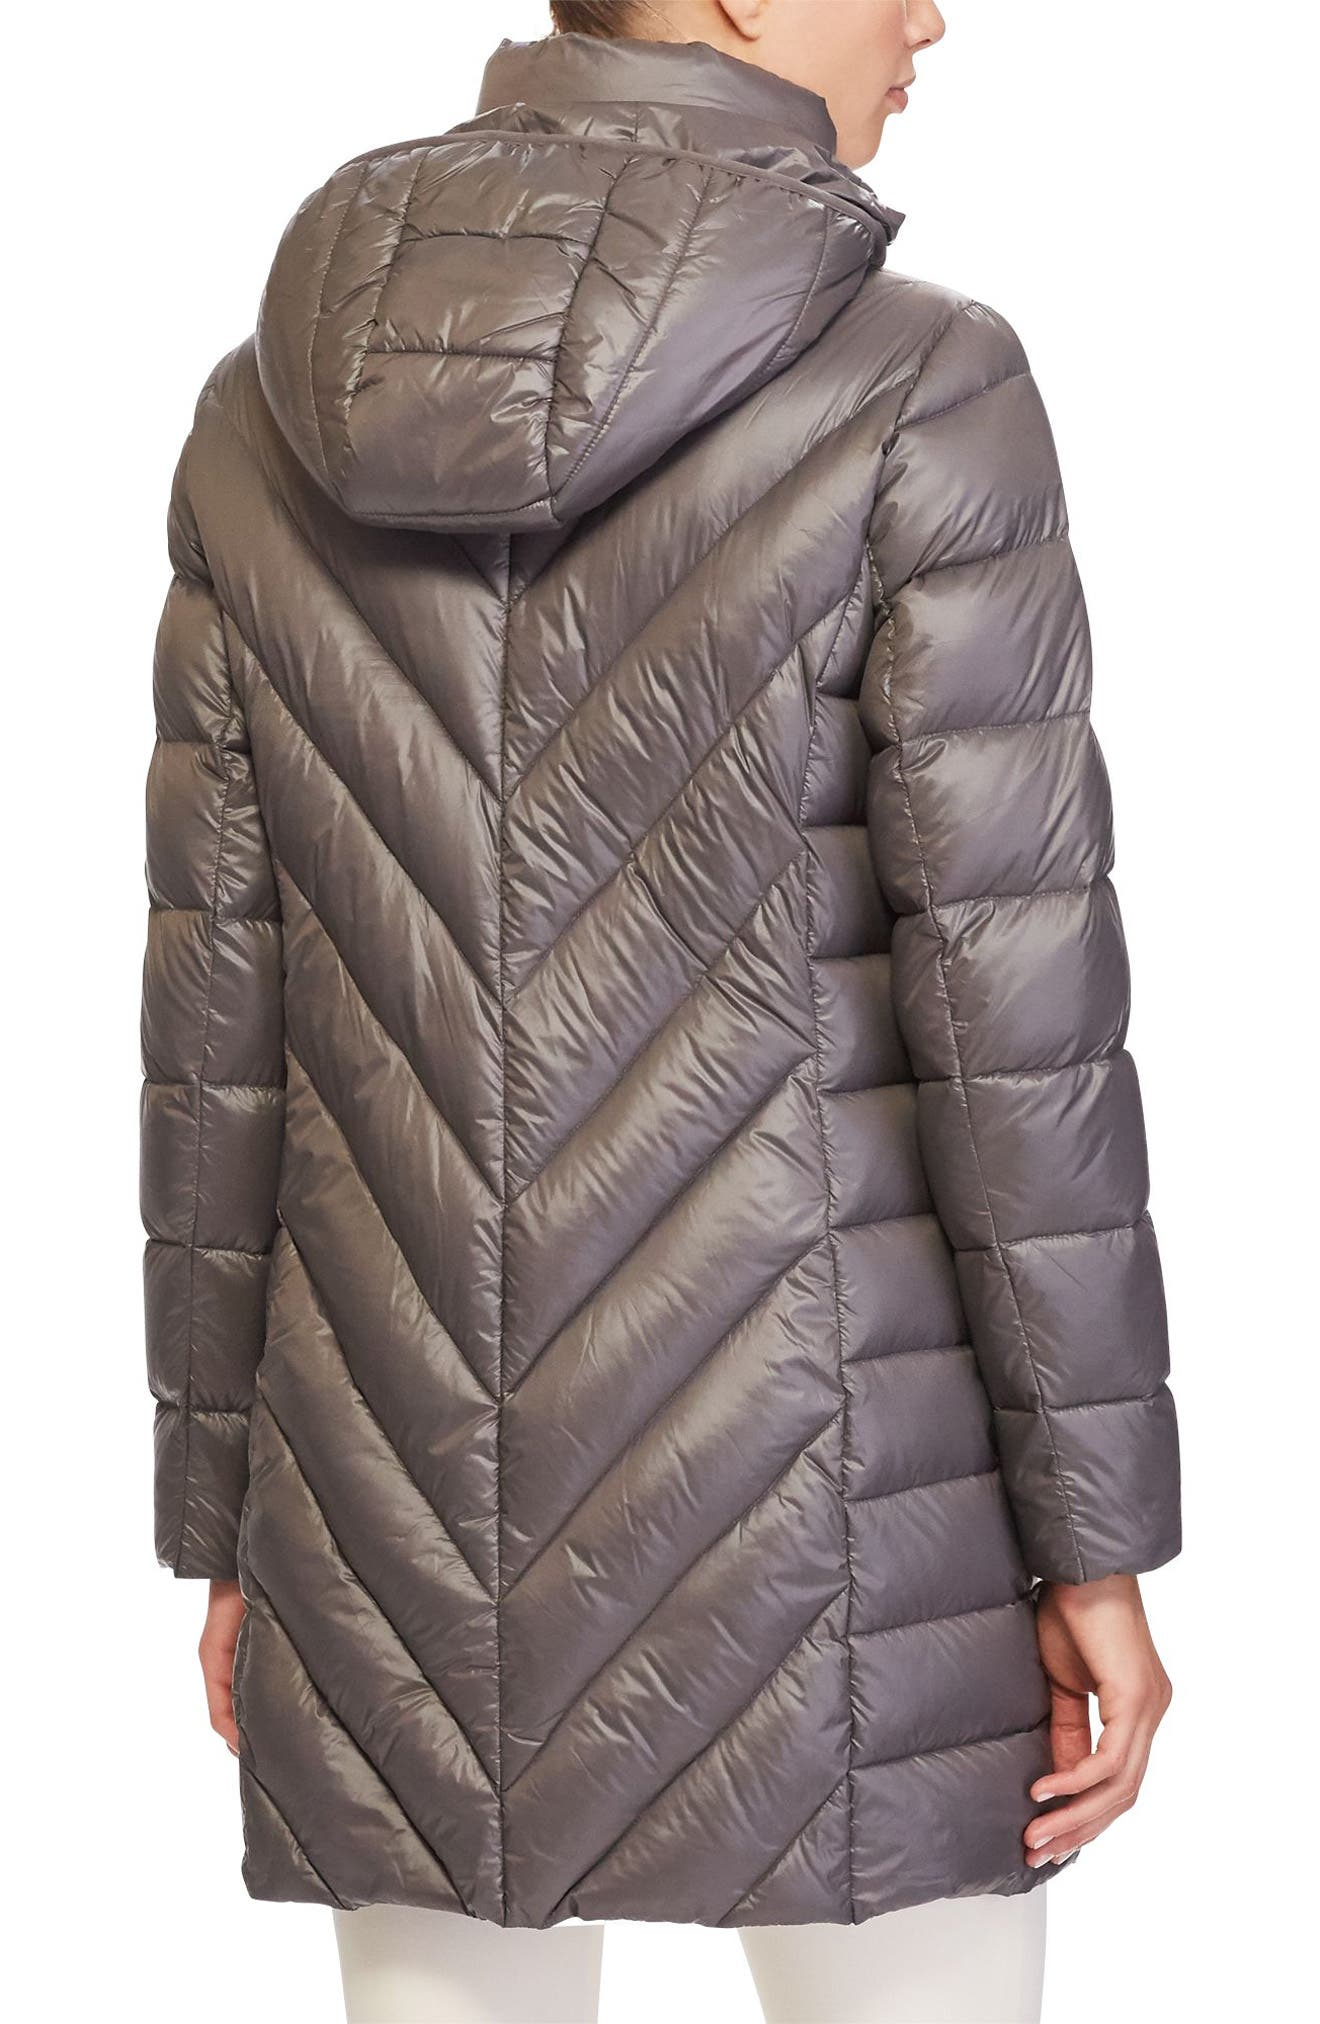 Chevron Quilted Down Jacket,                             Alternate thumbnail 3, color,                             Concrete